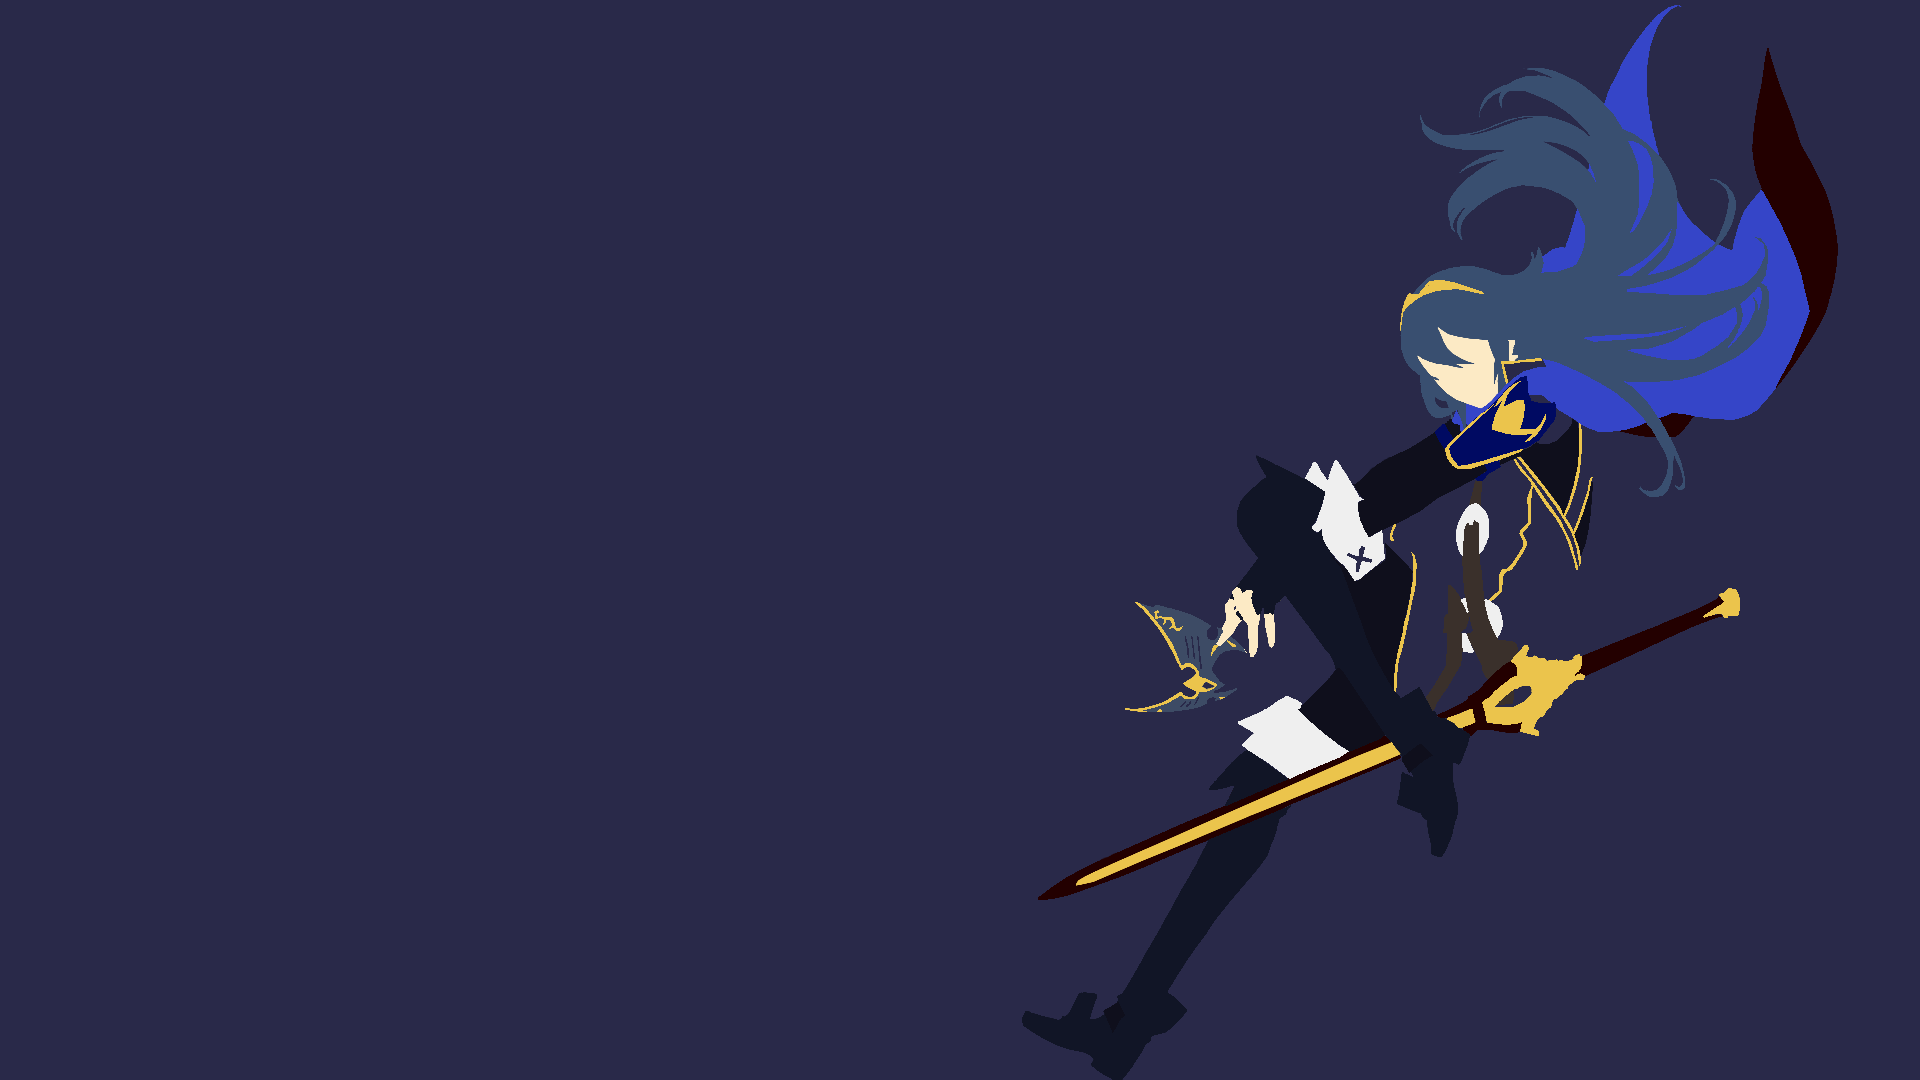 Fire Emblem Awakening wallpaper 11